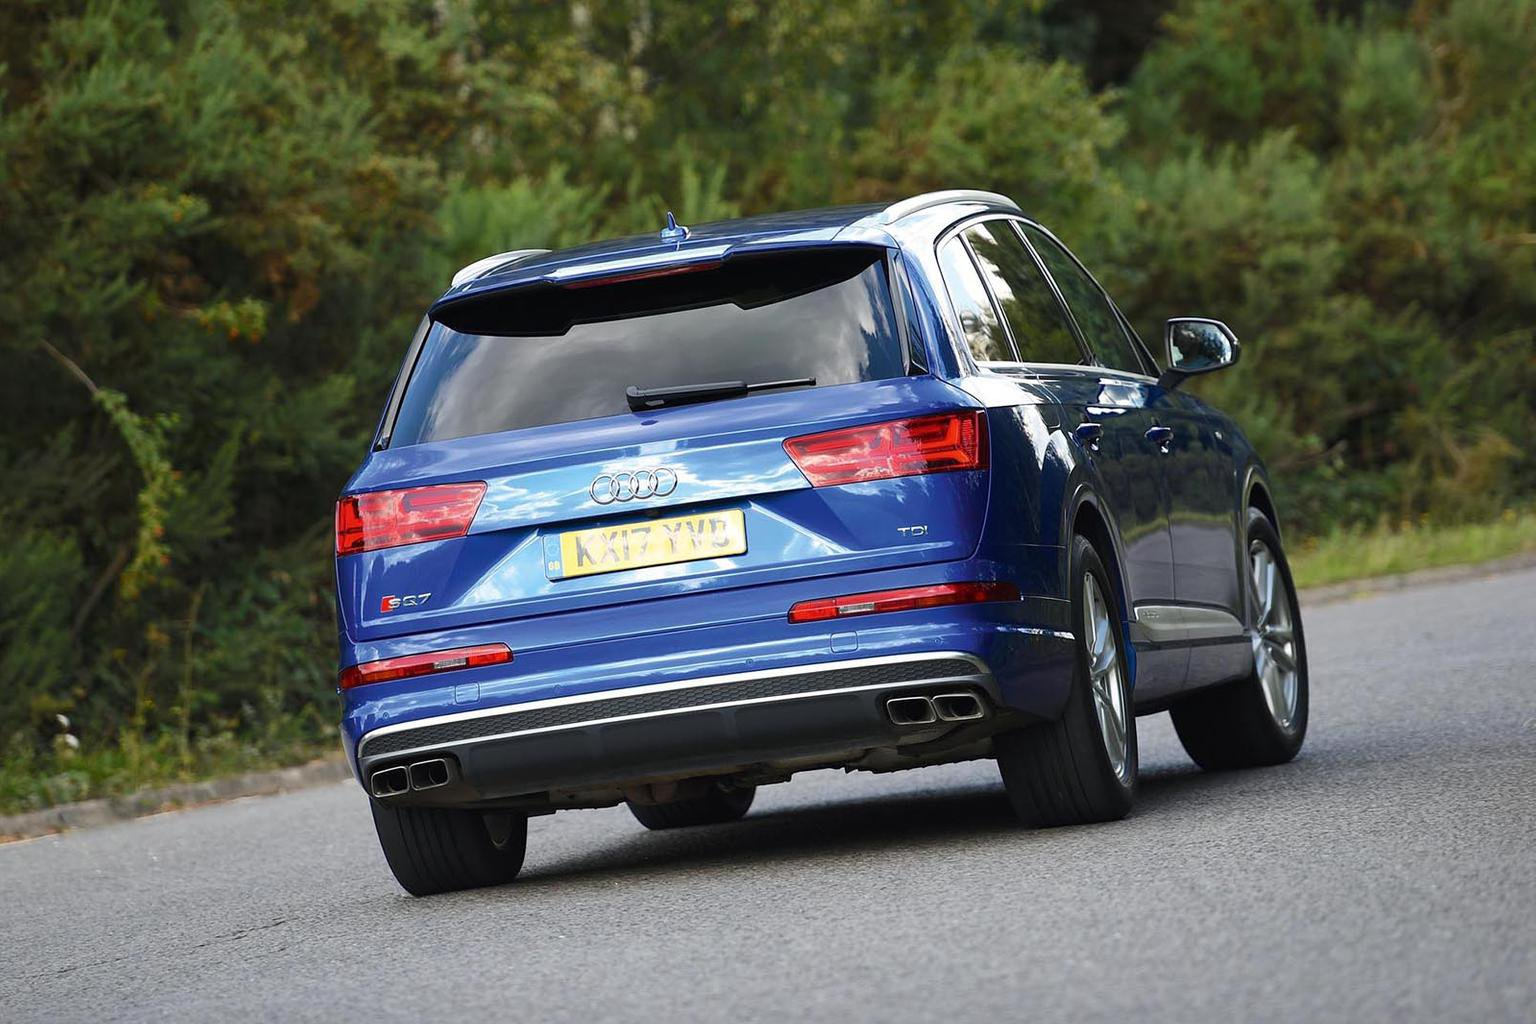 New Range Rover Velar & Audi SQ7 vs BMW X6